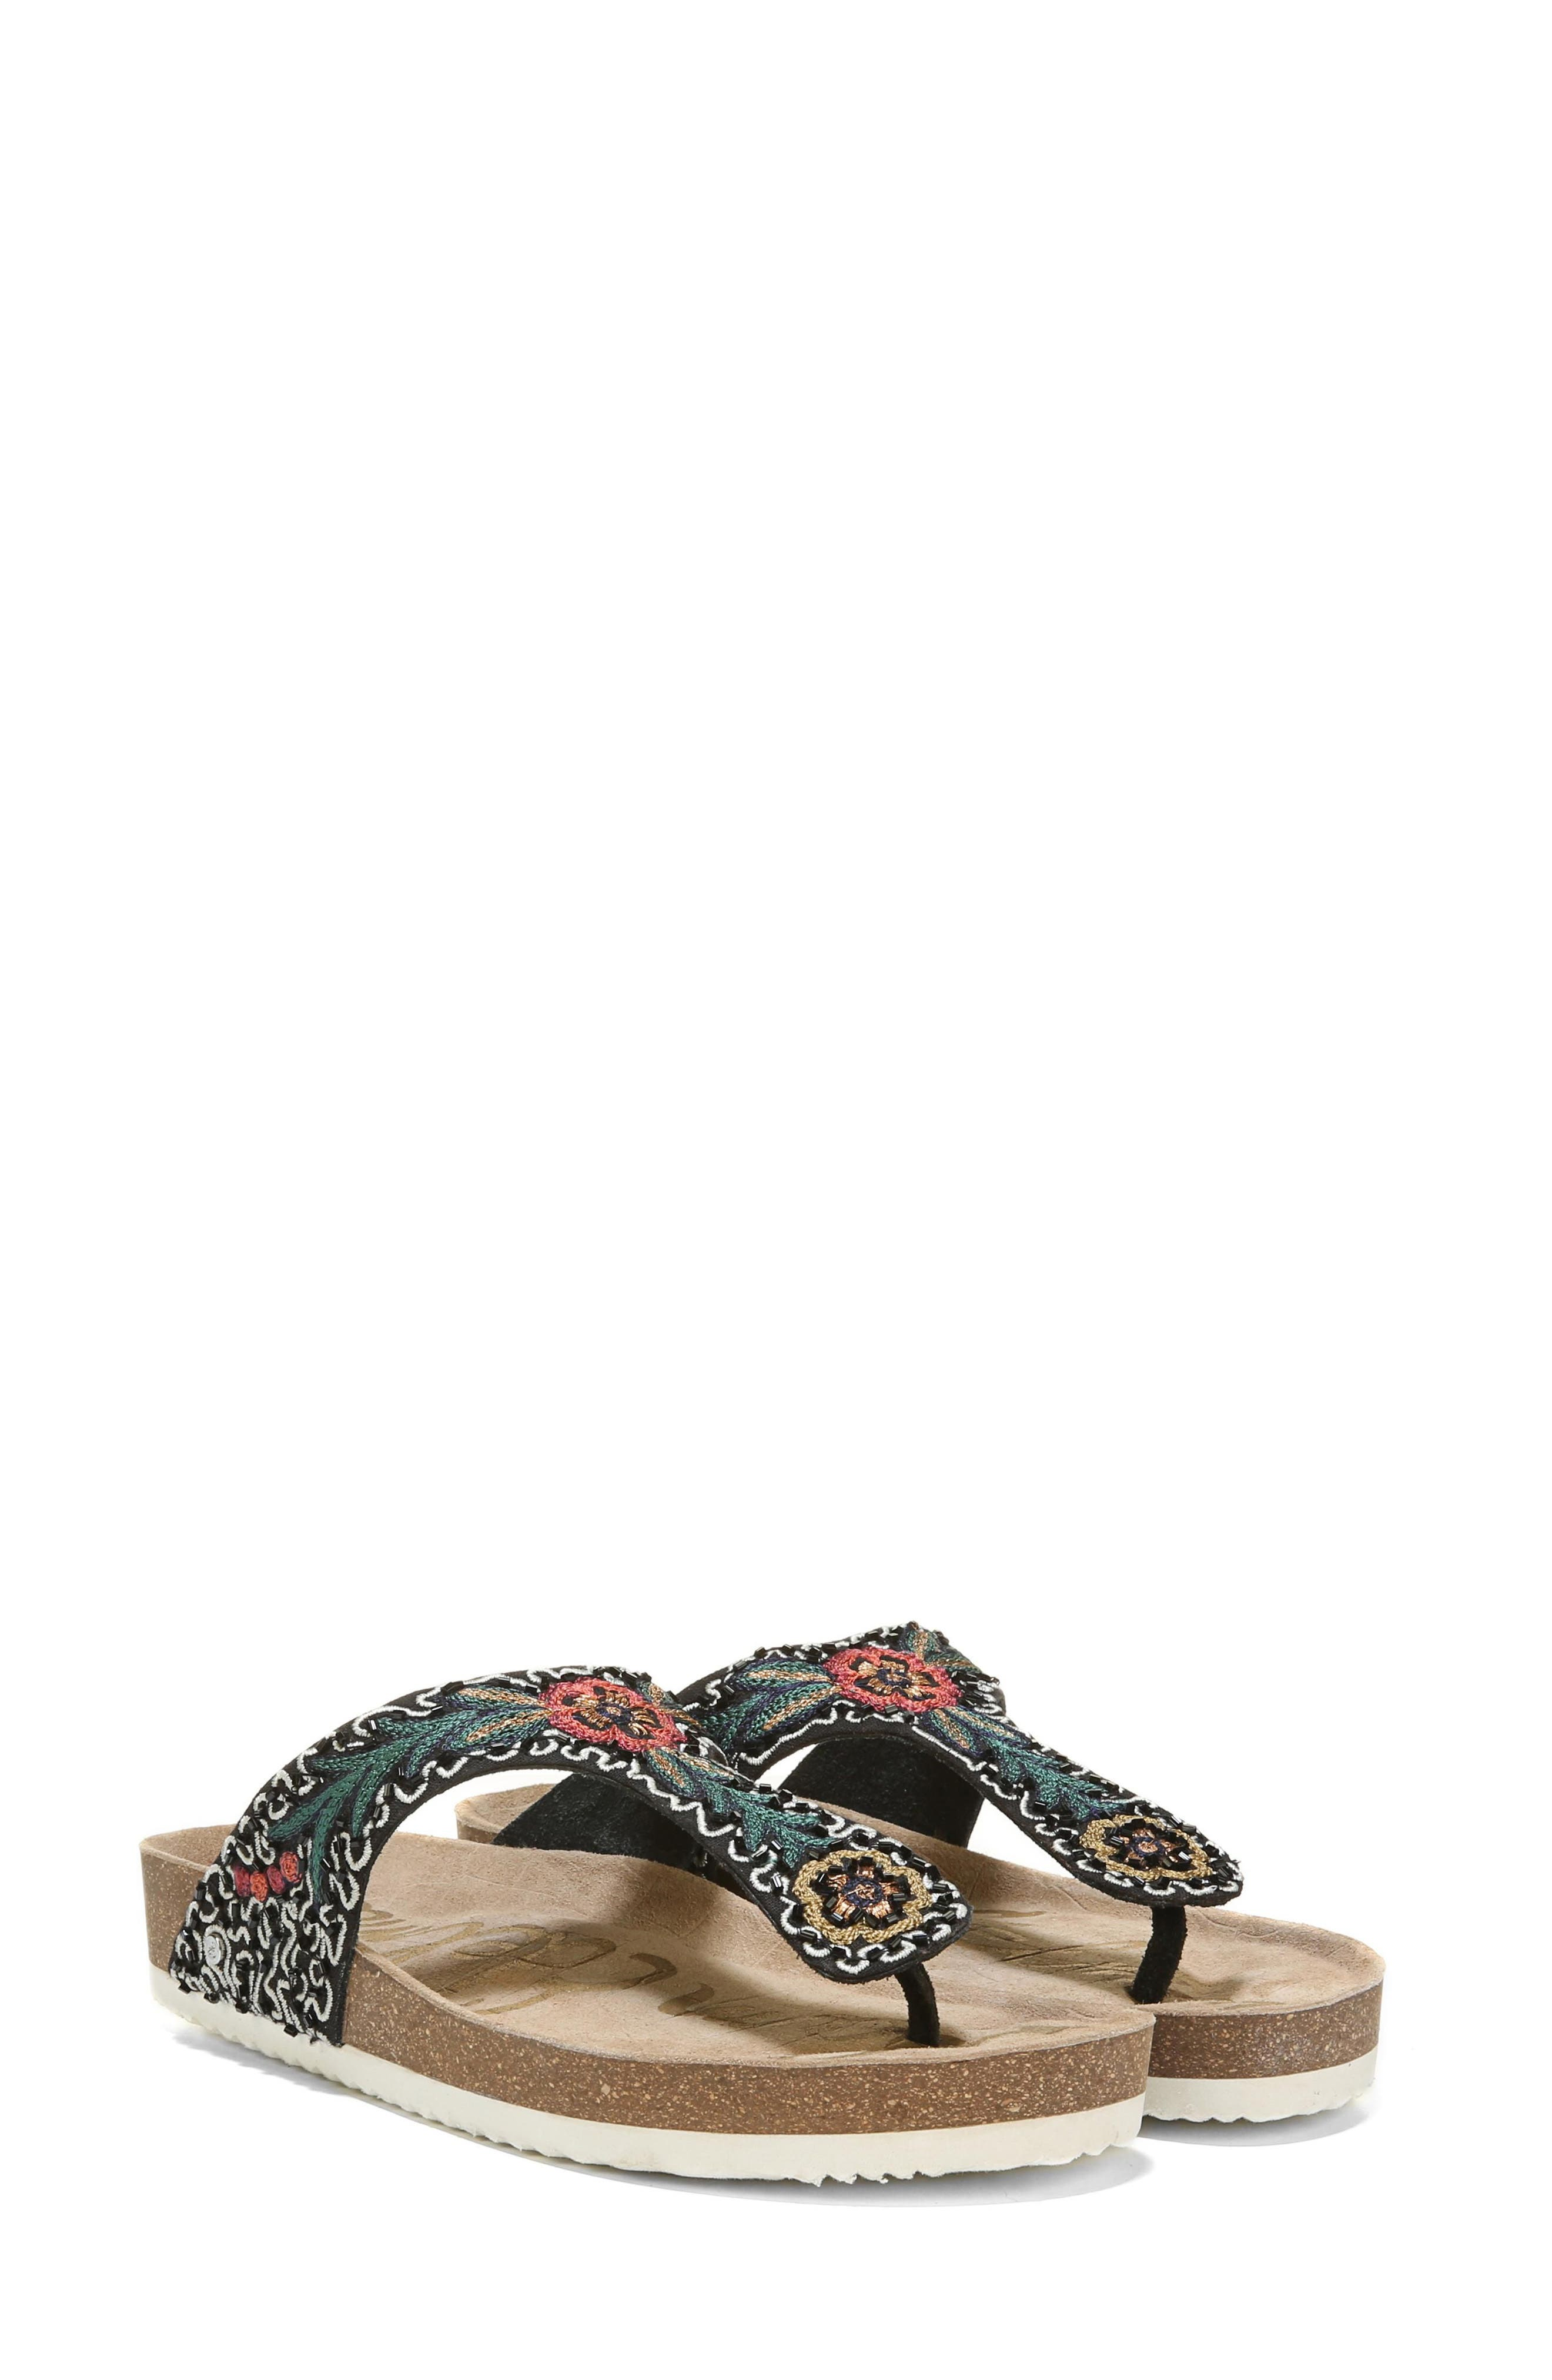 Olivie Beaded Flip Flop,                         Main,                         color, 001